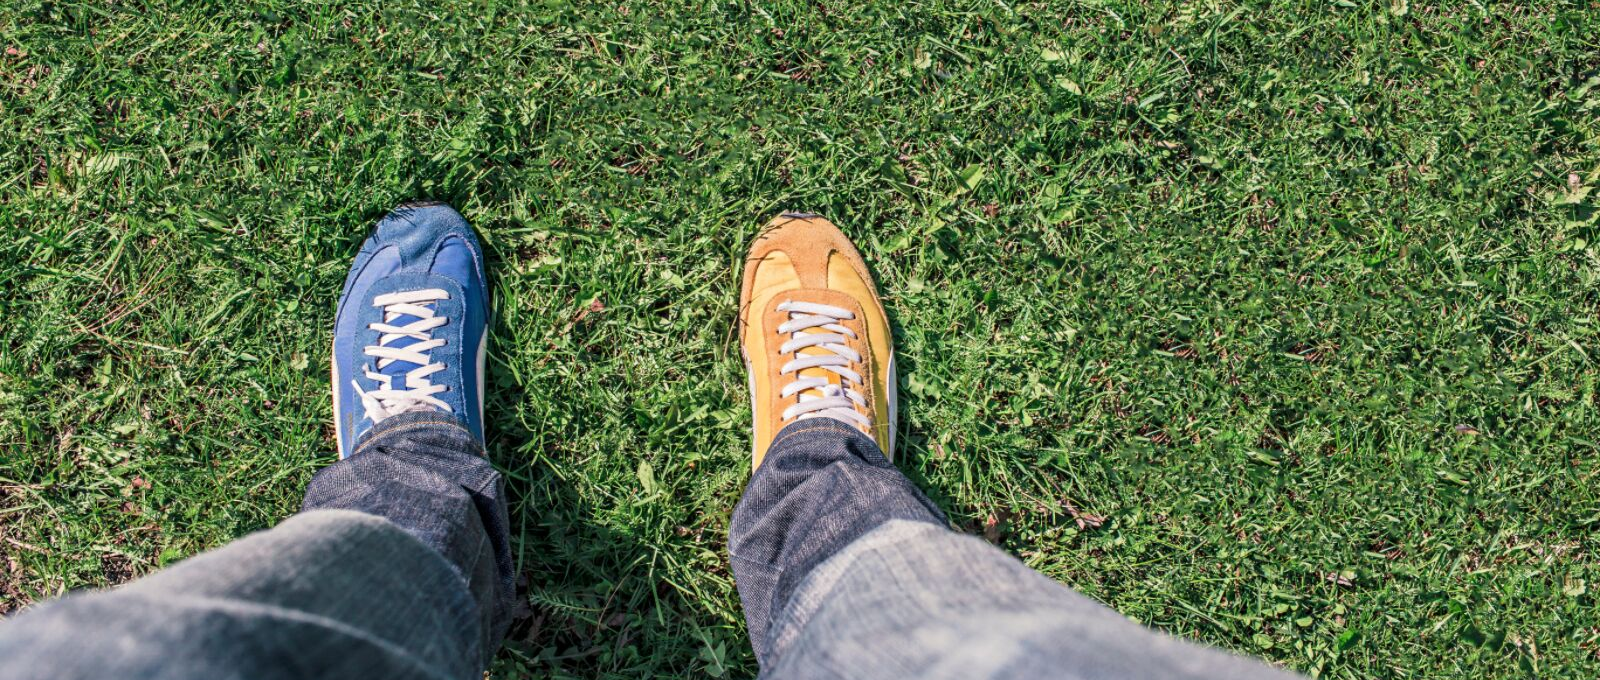 Looking down on two different color shoes to symbolize empathy, standing in someone else's shoes